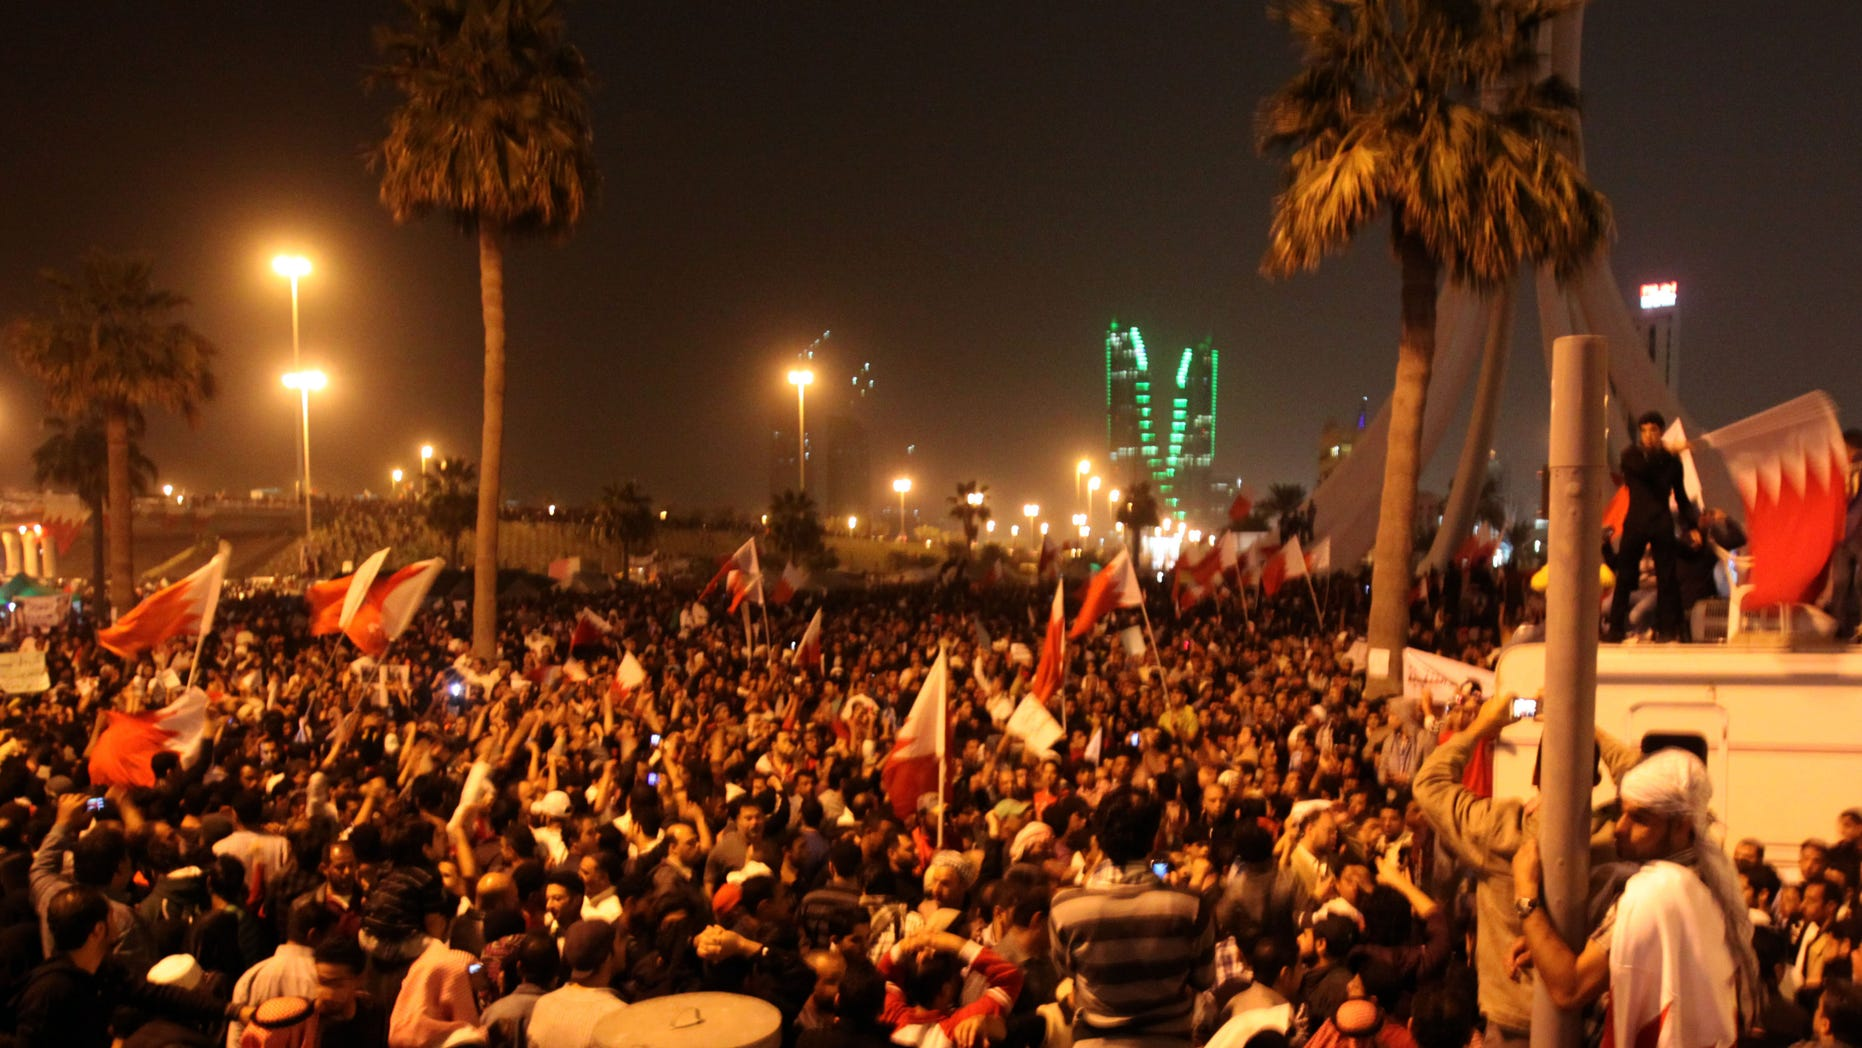 Feb. 16: Bahraini anti-government protesters wave flags in a demonstration at the Pearl roundabout, in Manama, Bahrain. In the background are the twin towers of the Bahrain Financial Harbour.